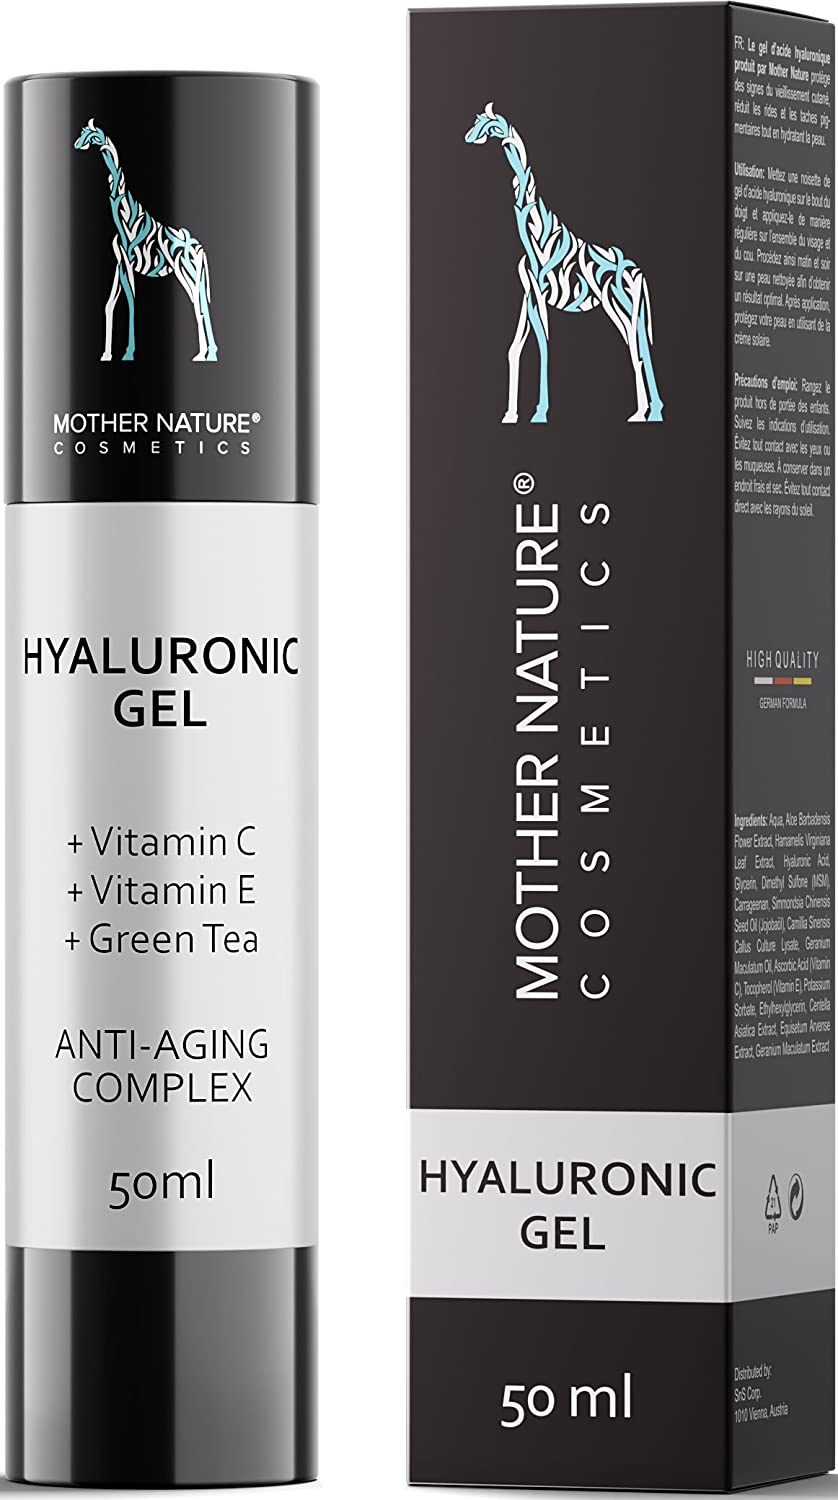 Mother Nature – Hyaluronic Acid Gel | 50ml High-dose | Anti-aging booster for face, neck, body | Includes vitamin C, vitamin E, green tea S&S GesbR